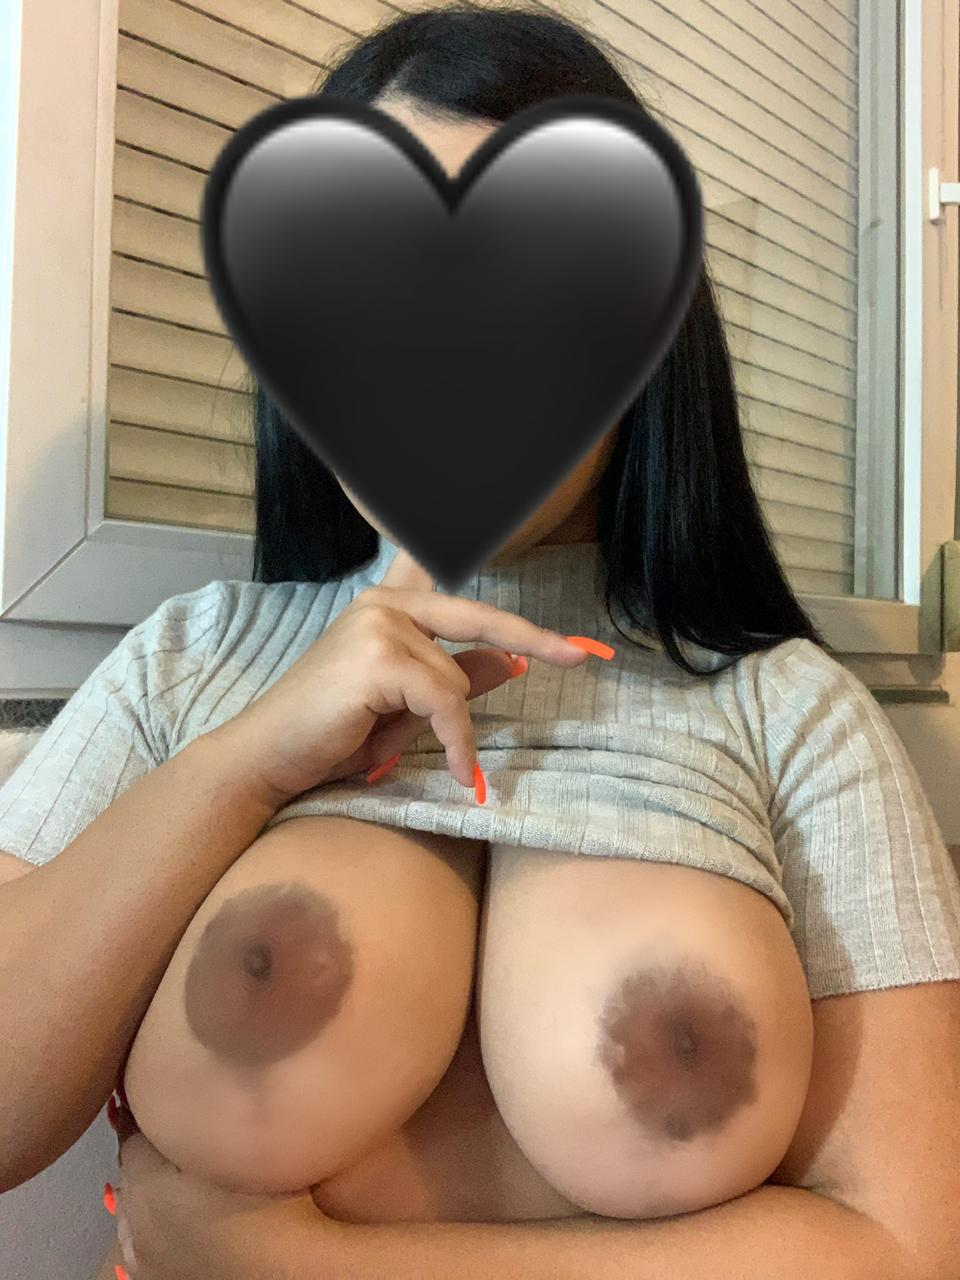 Victoria Matosa Nude Onlyfans Leaked! 0012